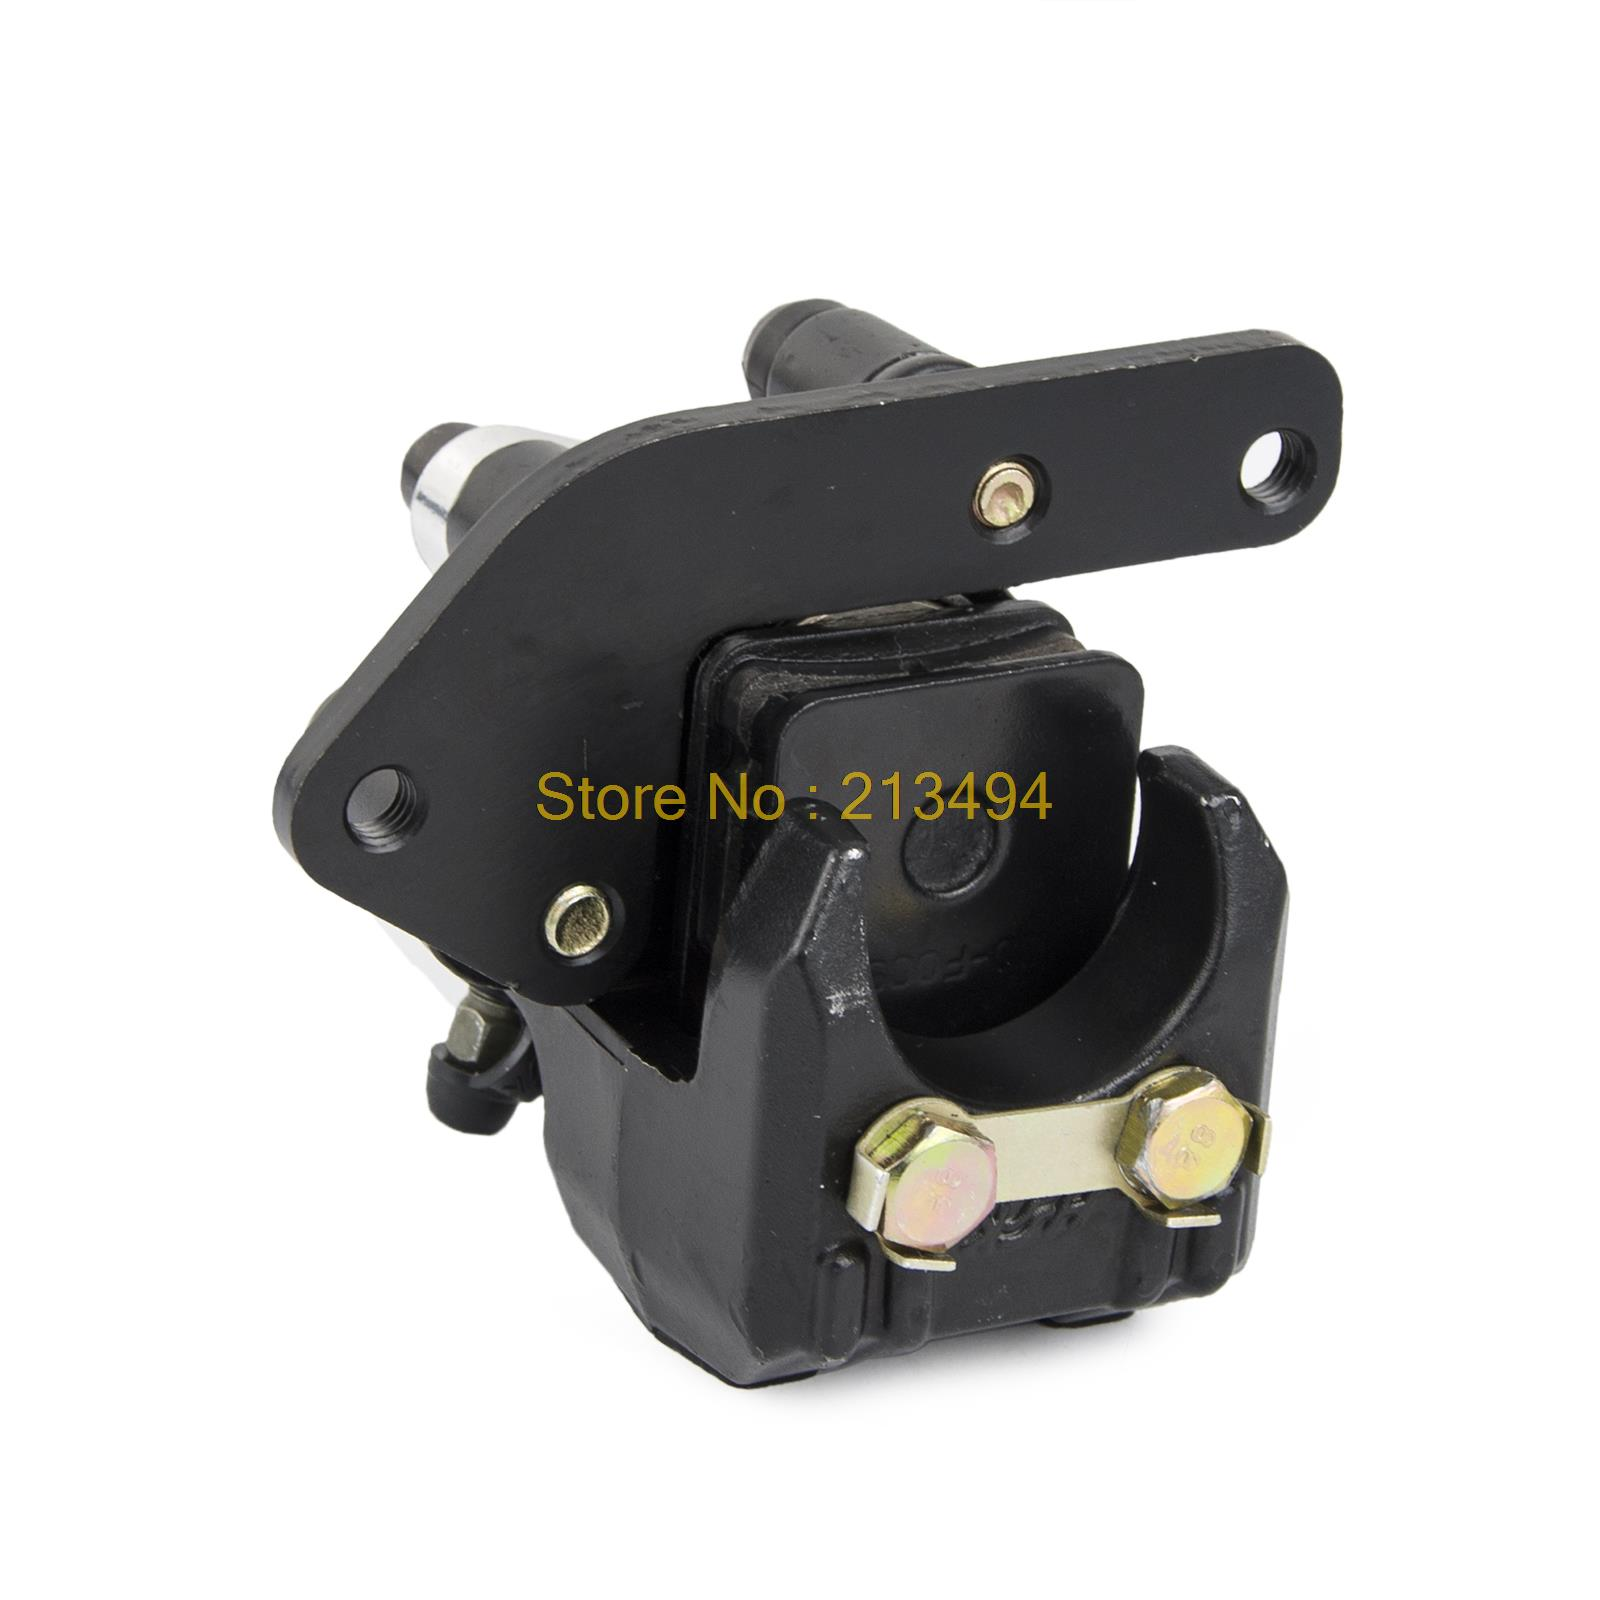 ФОТО REAR HYDRAULIC BRAKE CALIPER FOR YAMAHA BANSHEE 350 1987-2000 2001 2002 2003 2004 2005 2006